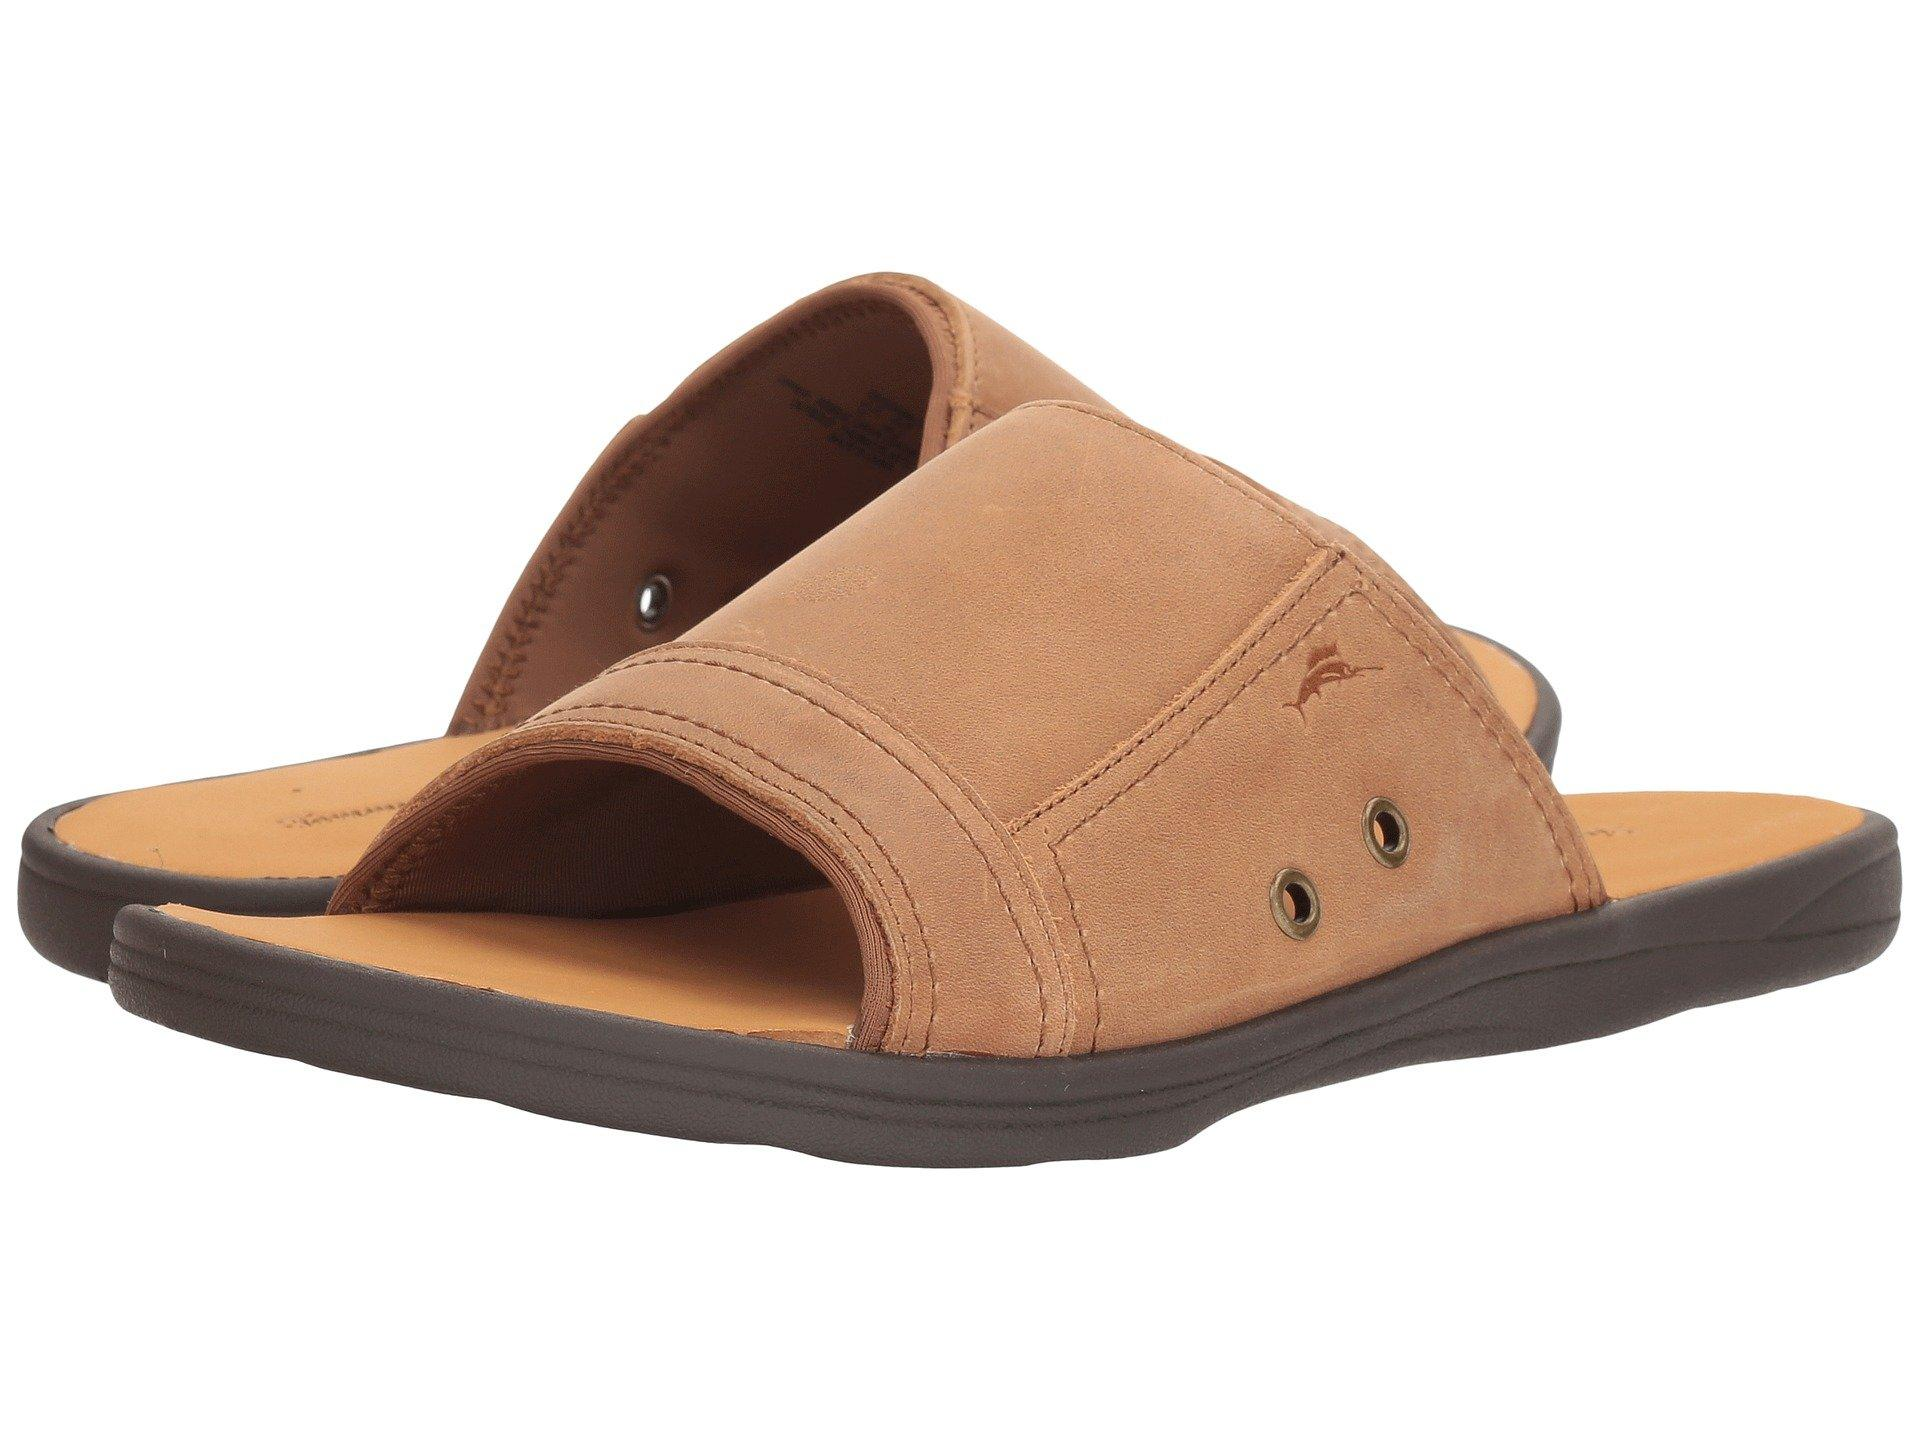 ec854bf9ccb632 Tommy Bahama Seawell Slide In Tan